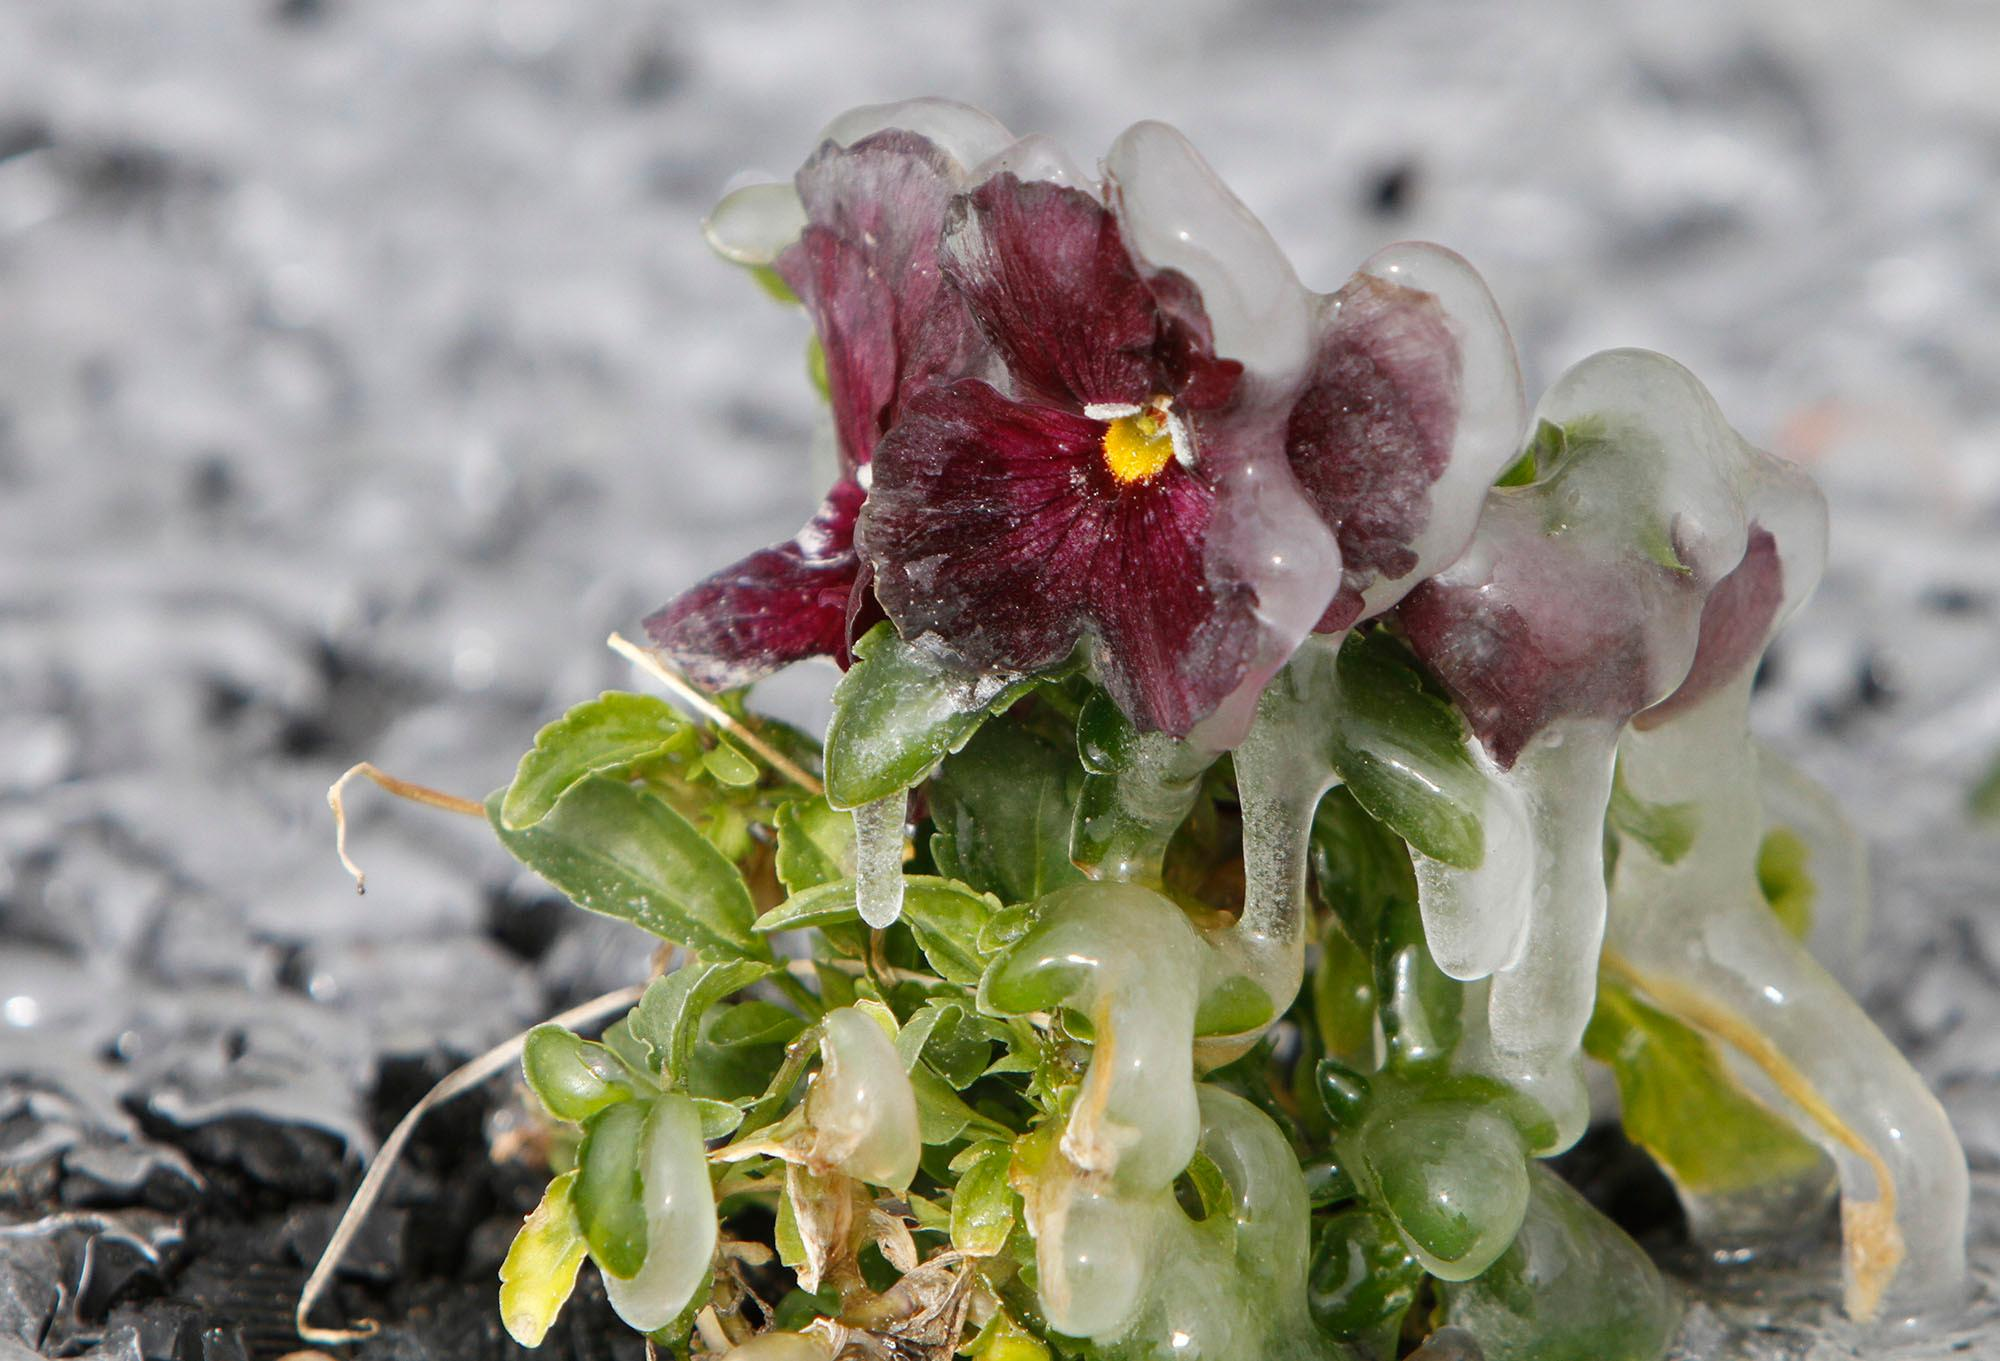 Ice covers a pansy near the fountain at Beau View condominiums in Biloxi, Miss., on Monday, Jan. 1, 2018. A hard freeze hit South Mississippi overnight and temperatures are expected to remain near or below freezing for the rest of the week. (John Fitzhugh/The Sun Herald via AP)